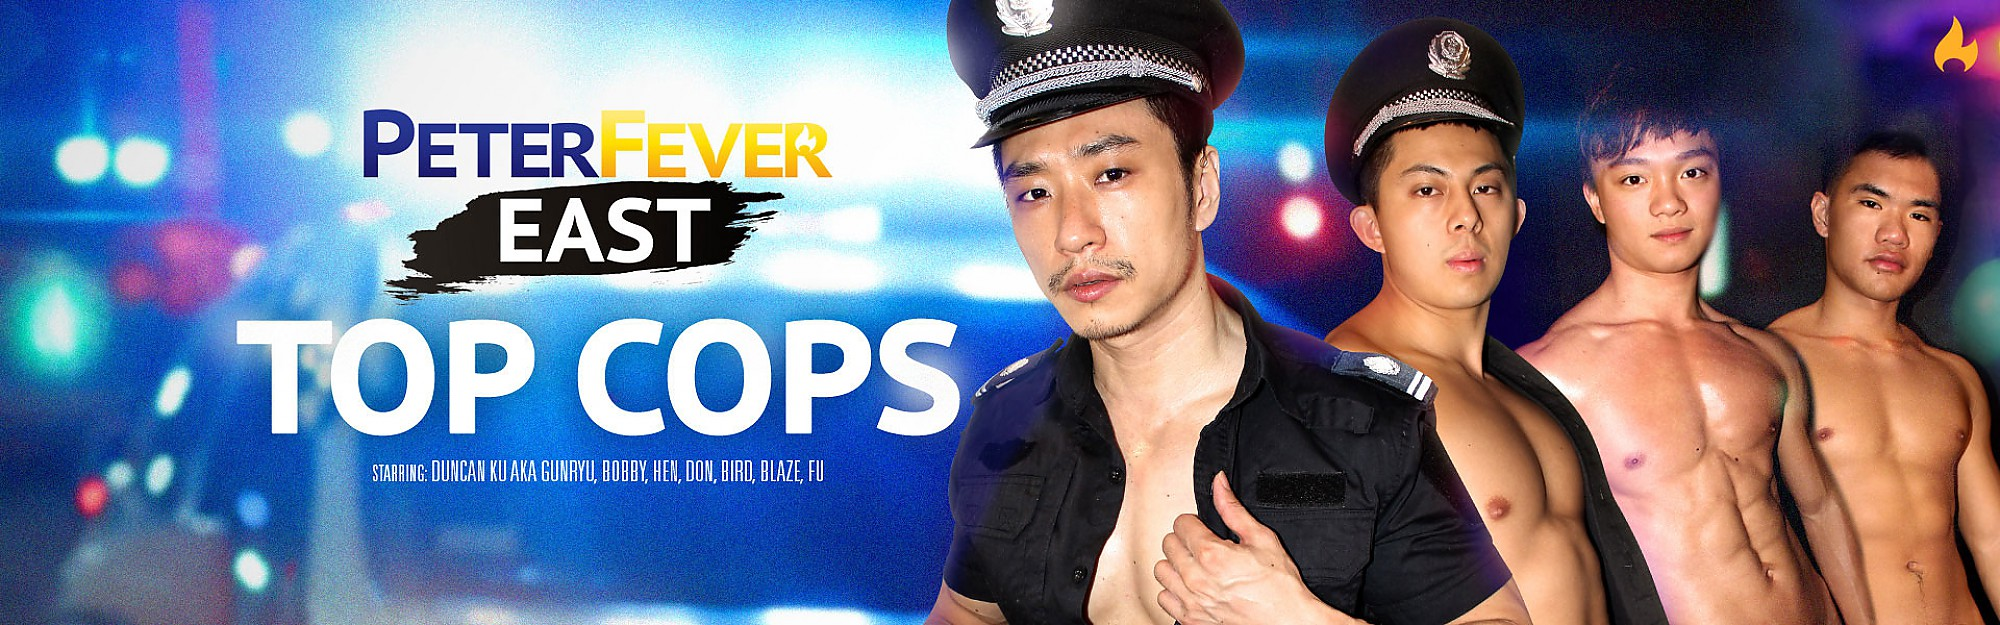 PeterFever East: Top Cops